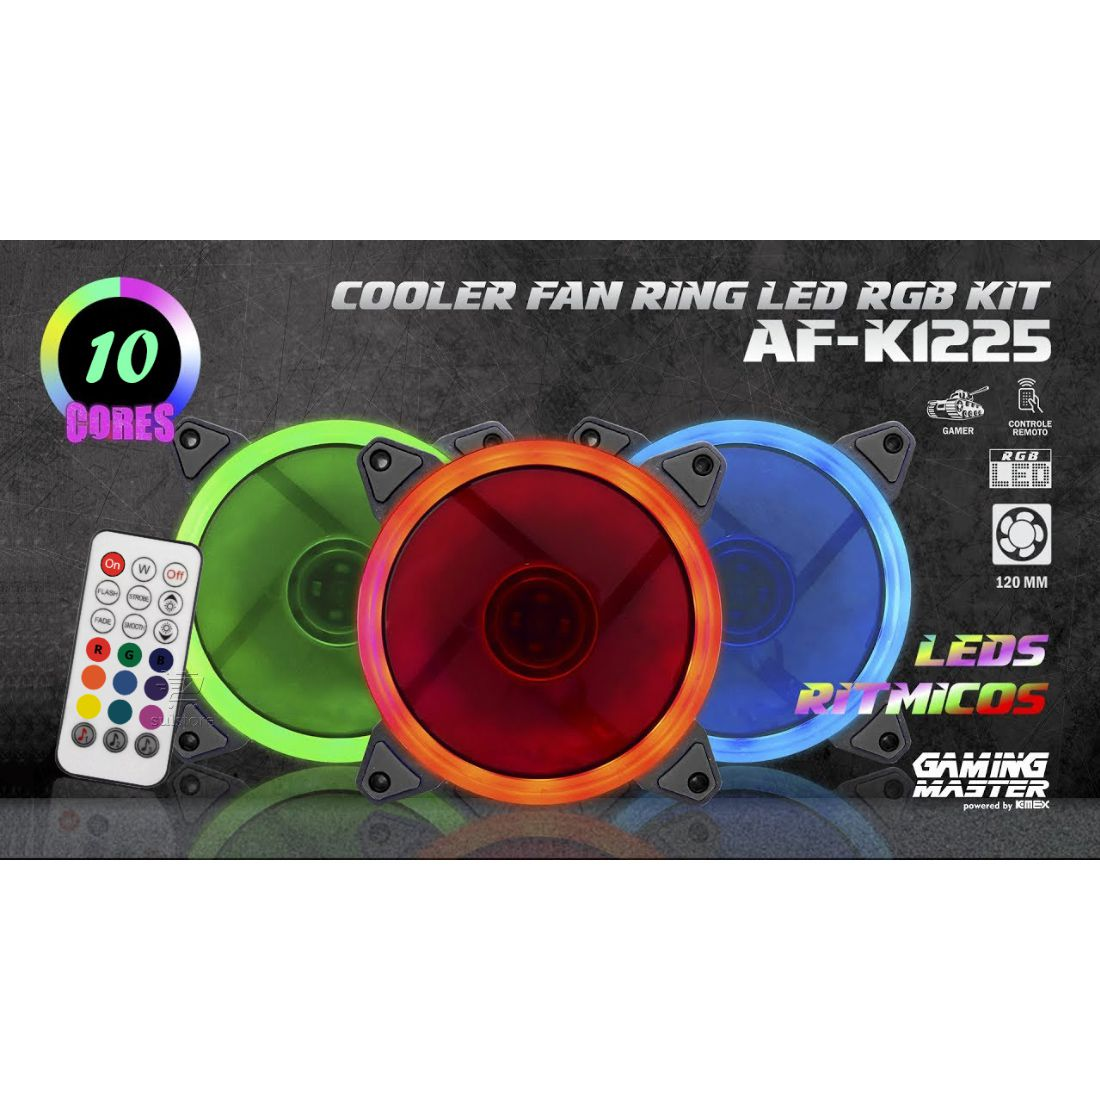 3 Cooler Fan 120mm RGB Ring LED Conforme Música com Controle Remoto Kmex AF-K1225